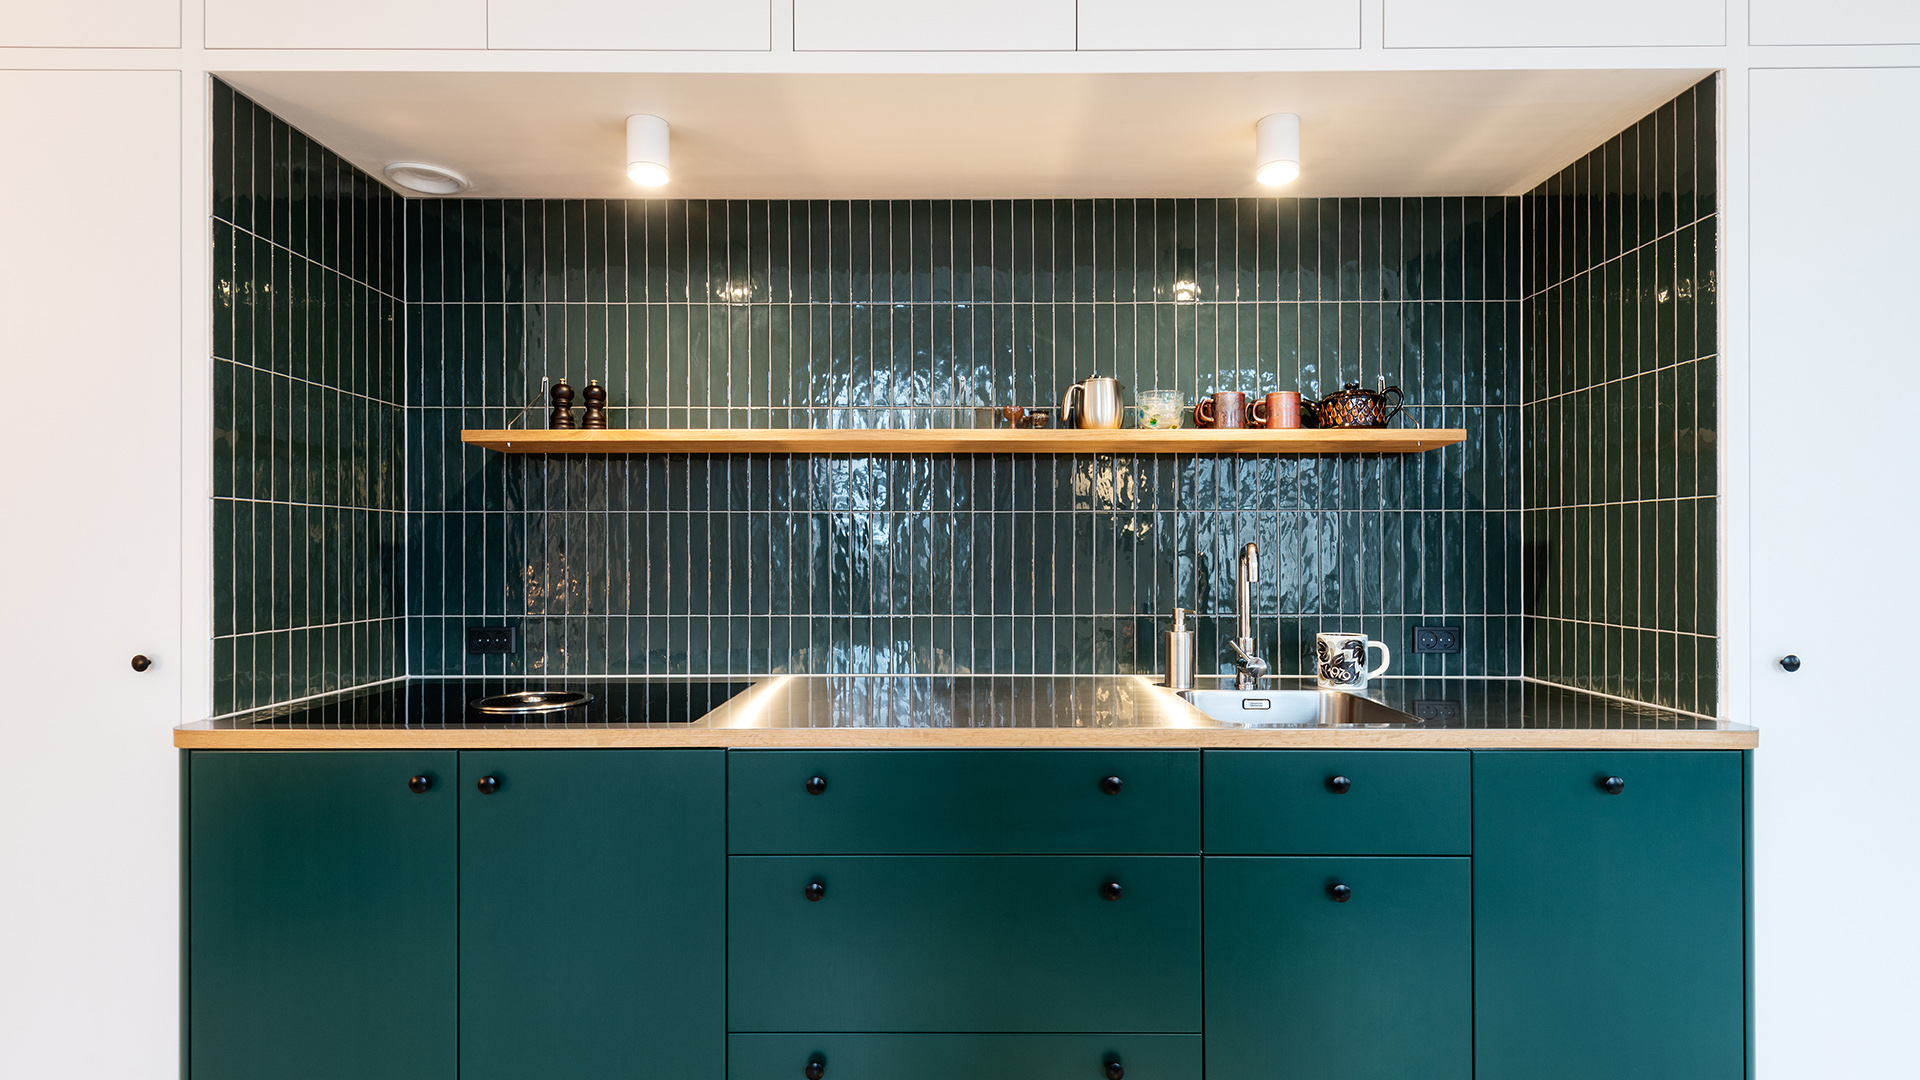 Vintage kitchen for a family collective in a former naval hospital